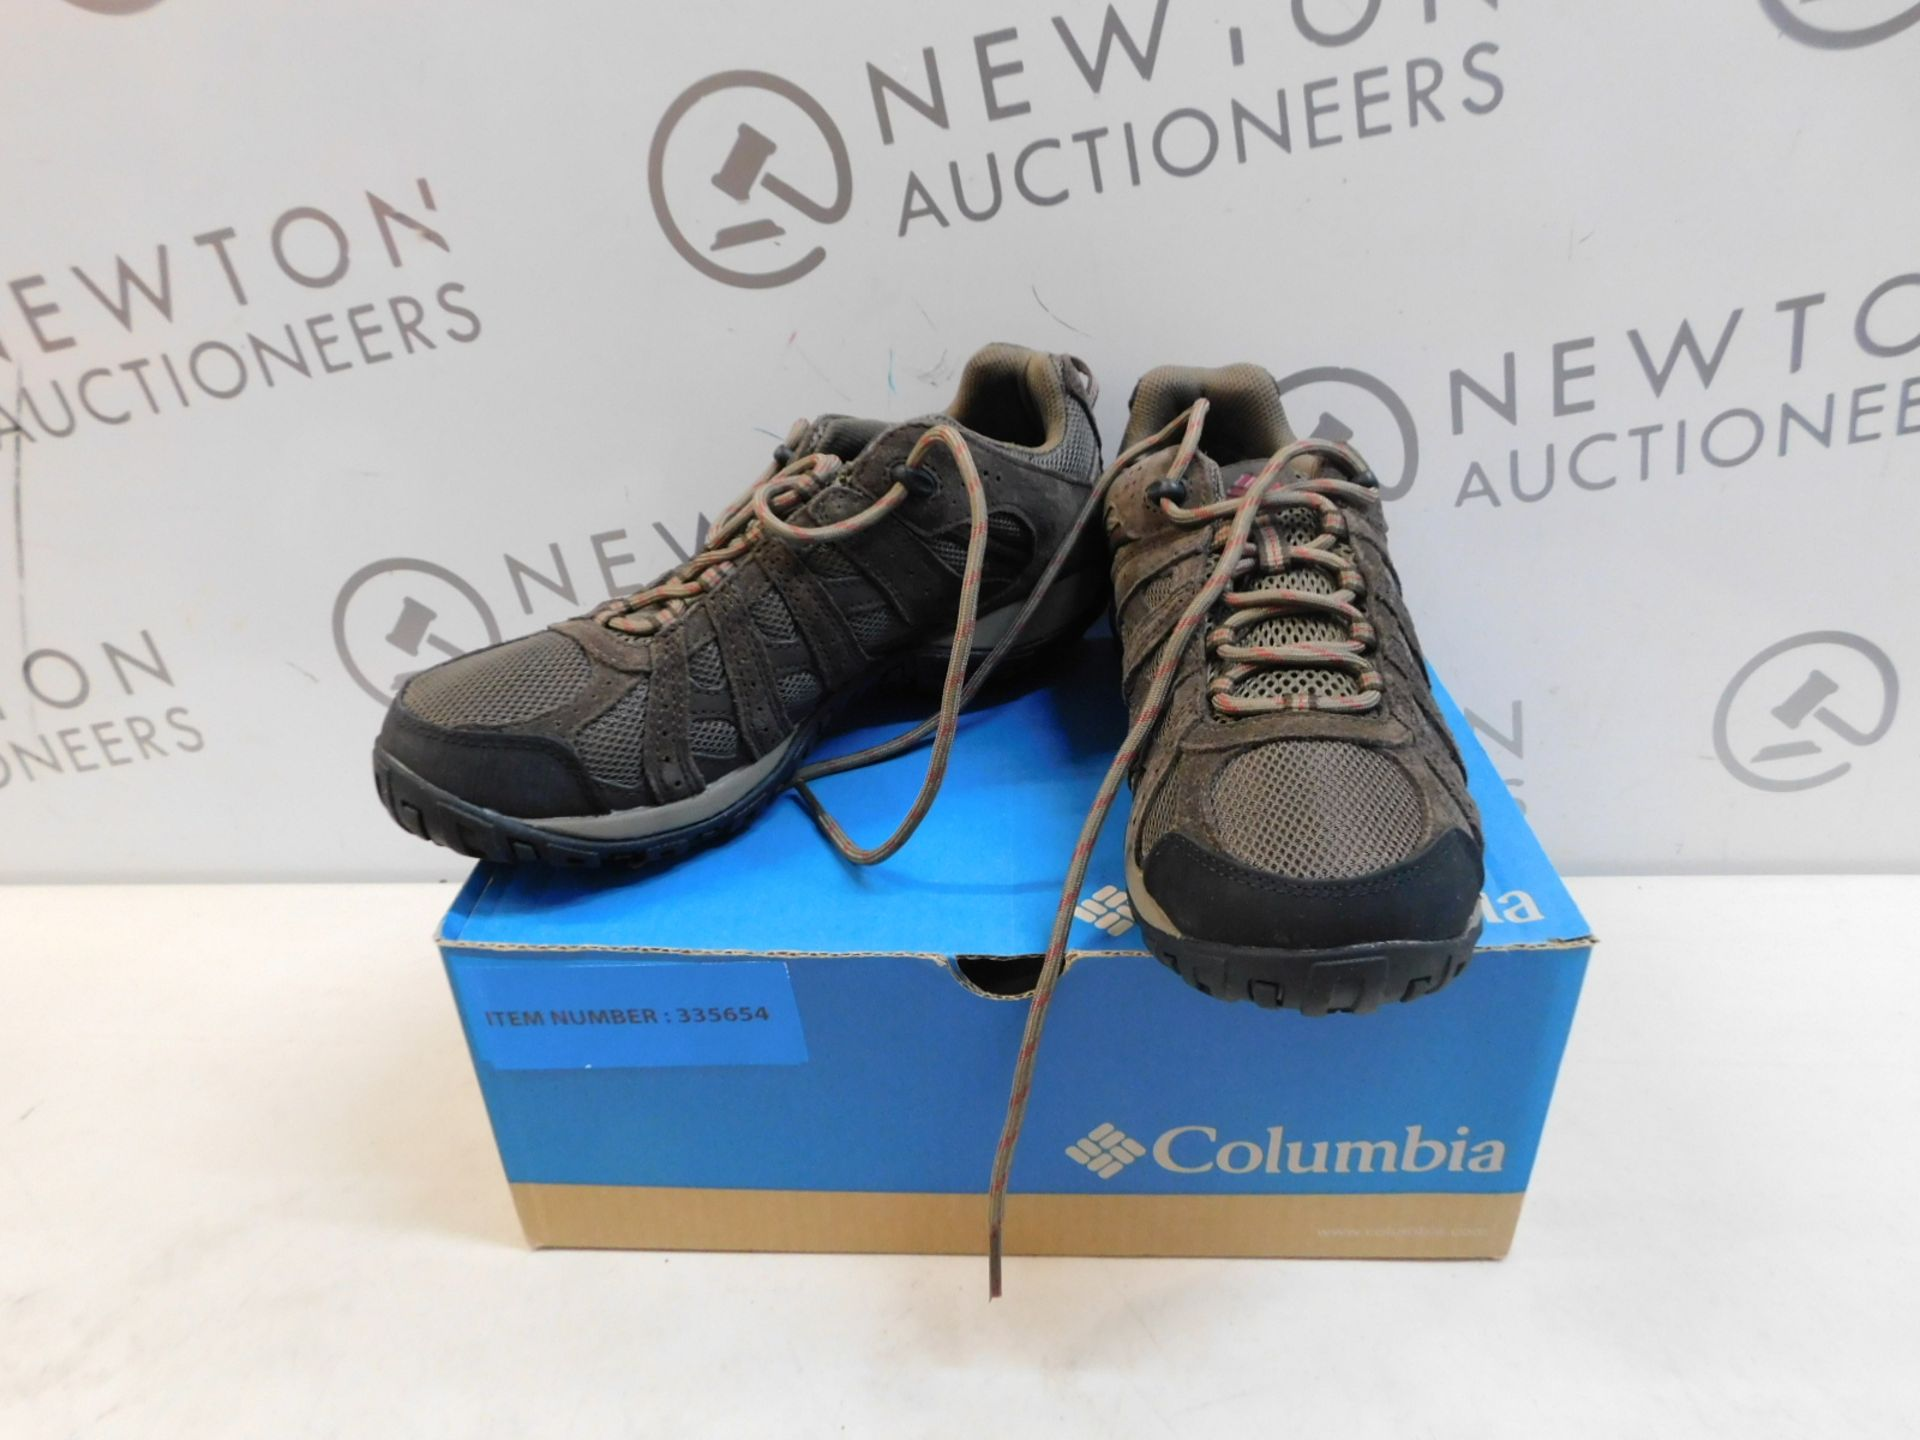 1 BOXED PAIR OF MENS COLUMBIA REDCREST WATERPROOF SHOES UK SIZE 7 RRP £79